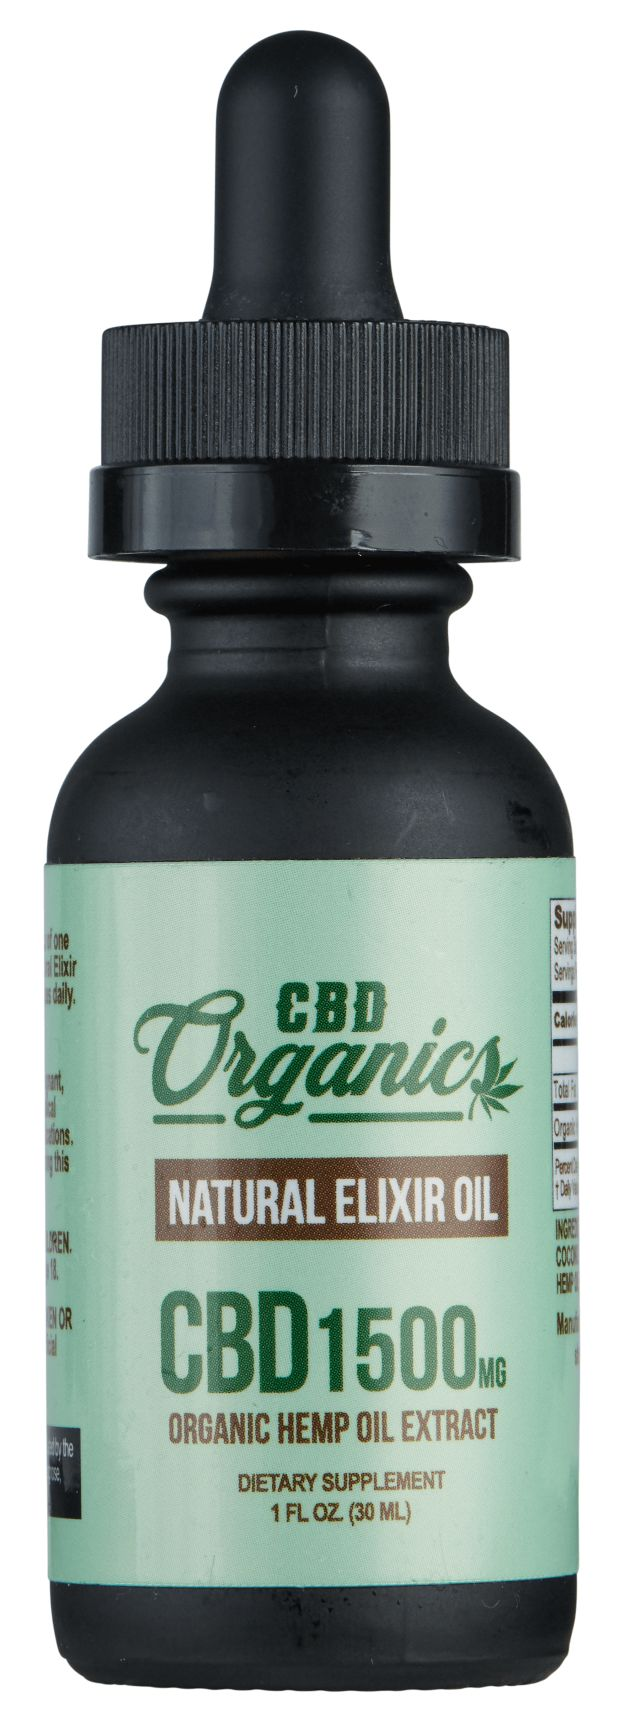 CBD Oil 1500mg - Shop CBD Organics